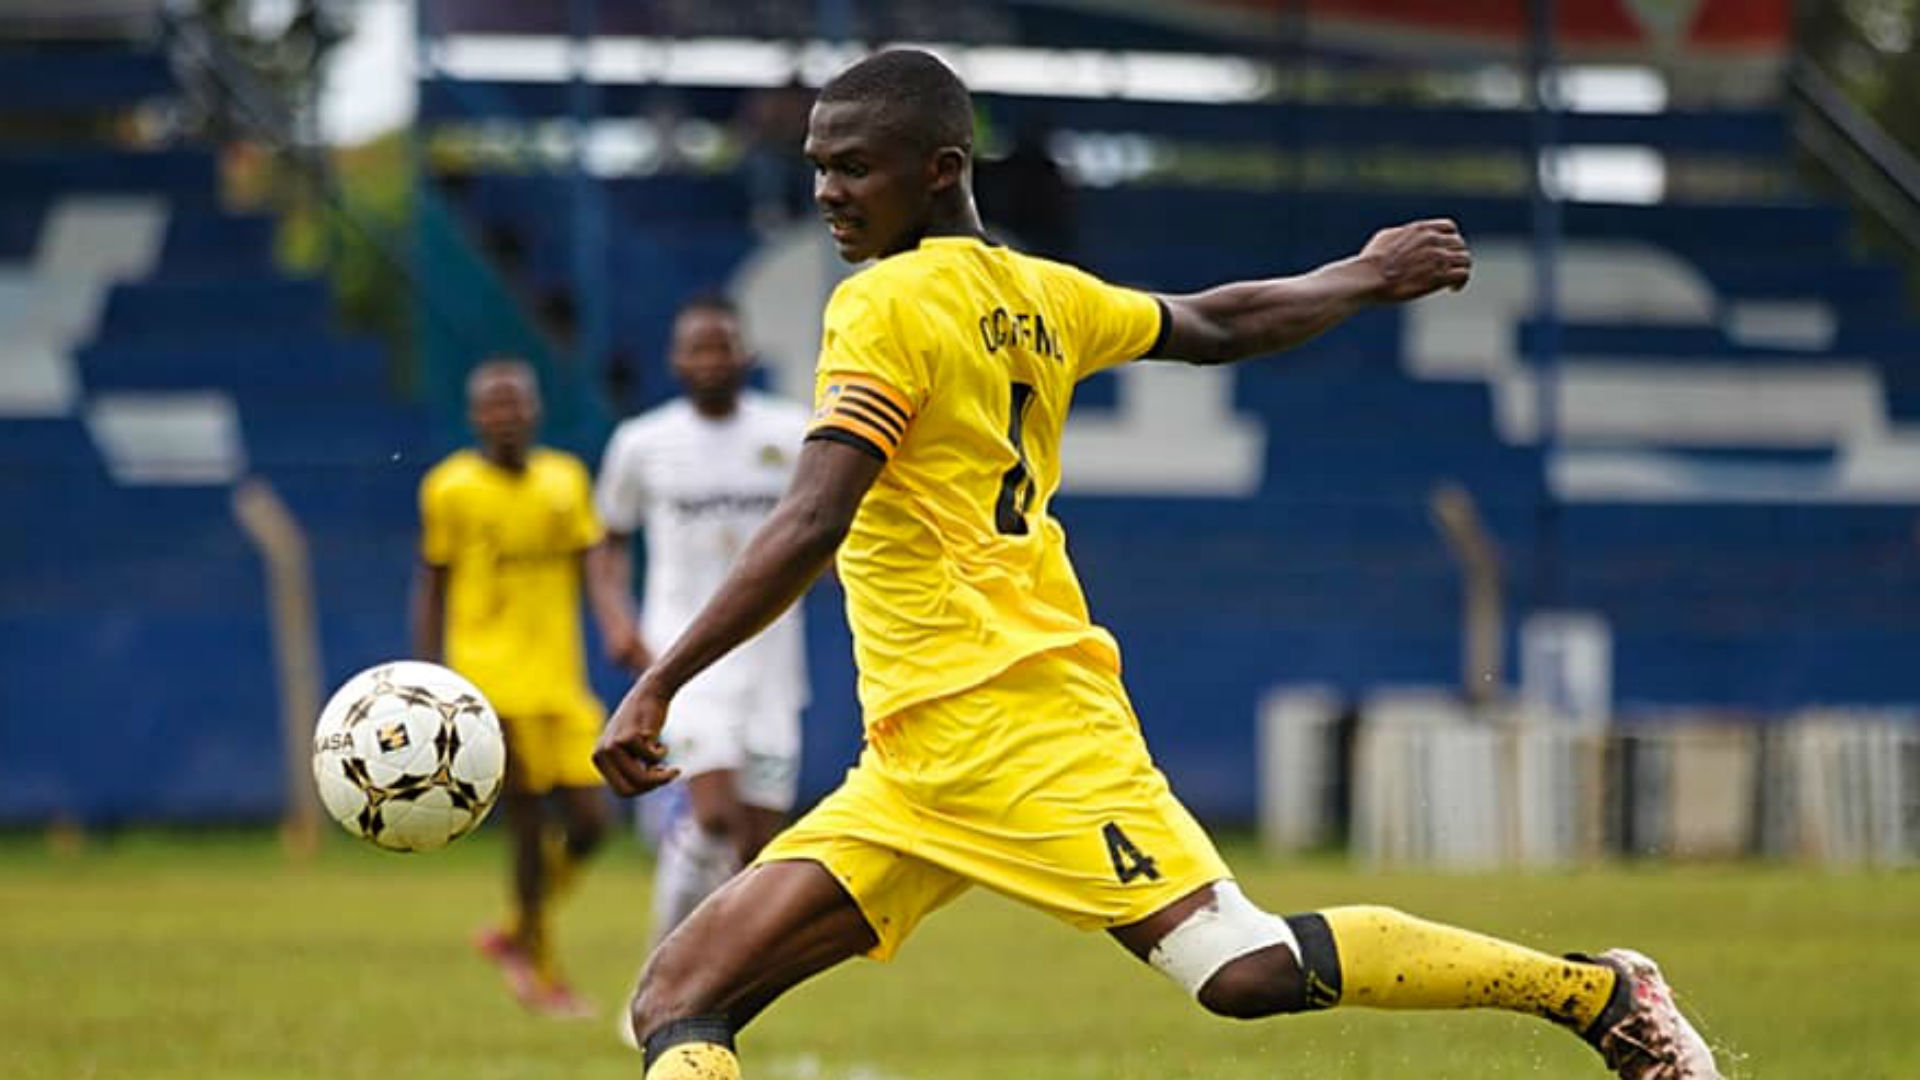 Ochieng: Wazito FC captain ruled out for 'months' after surgery ...